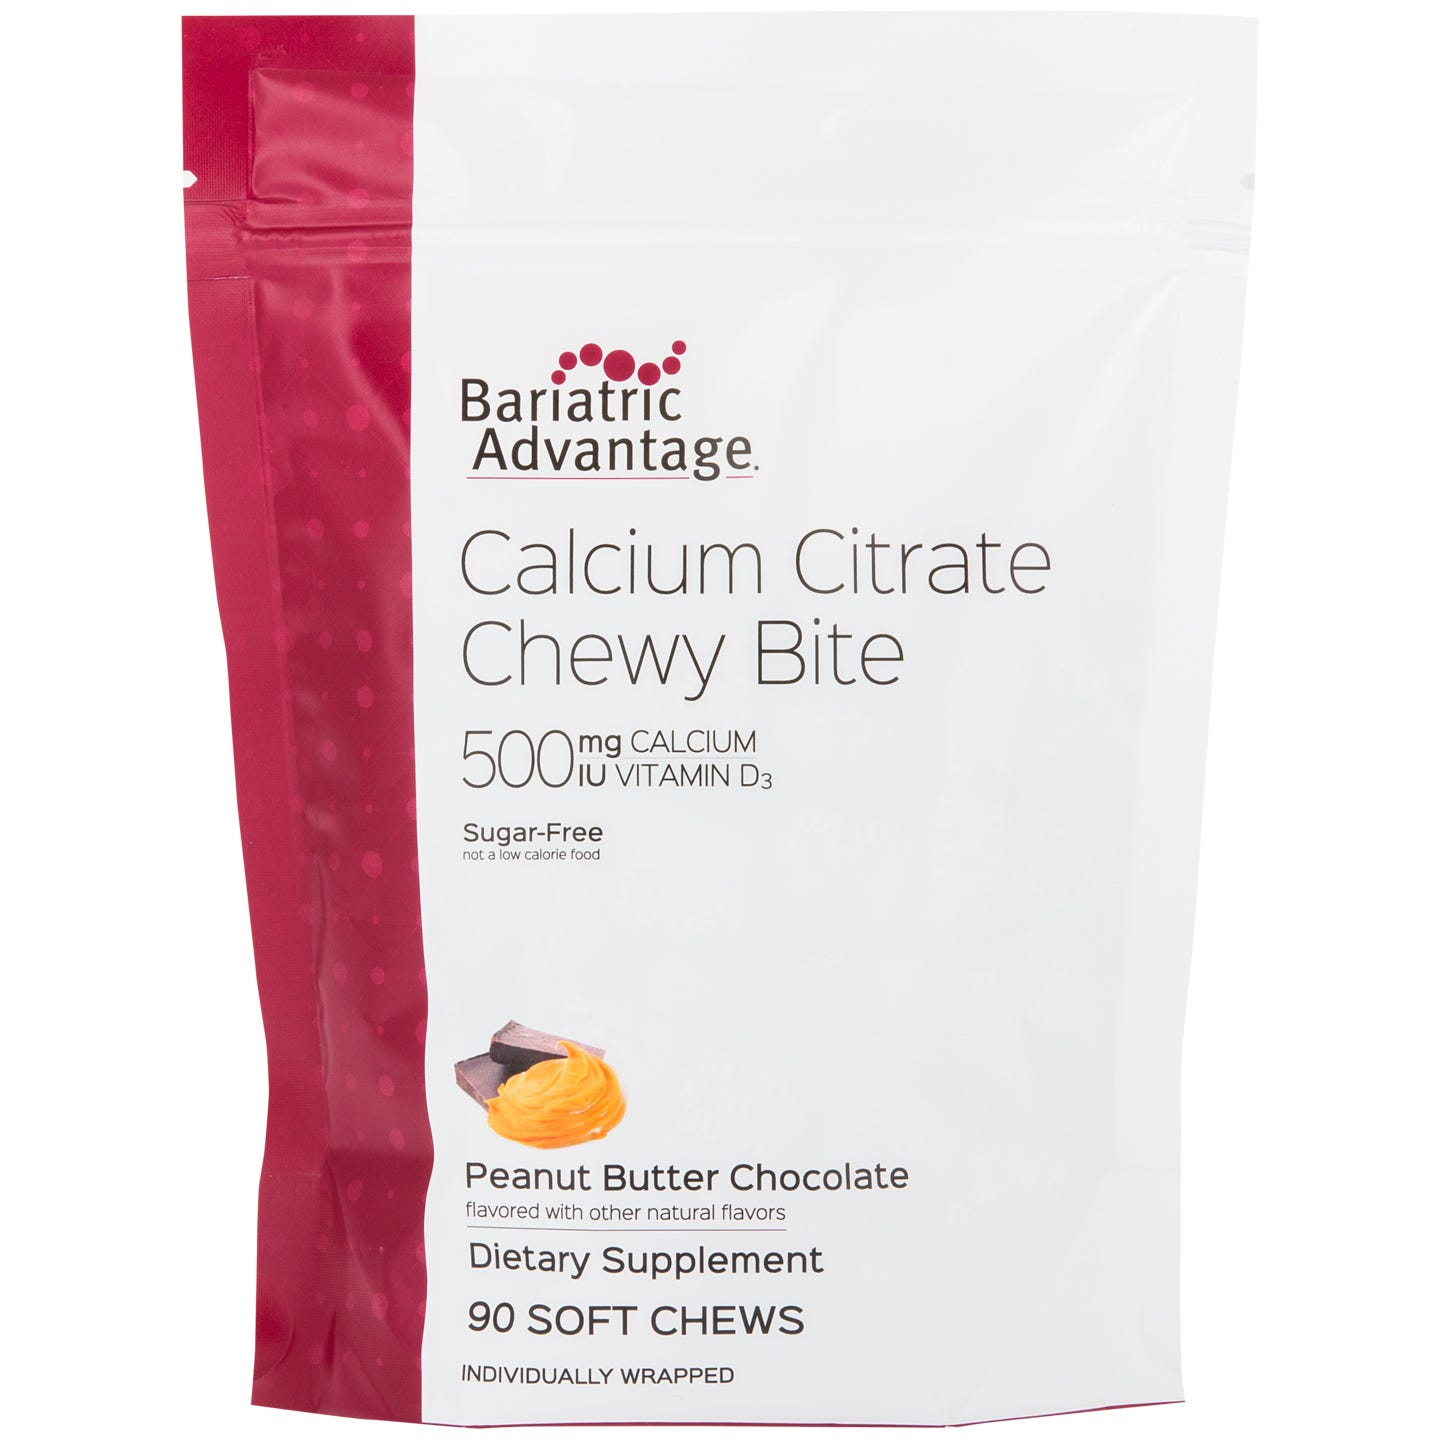 Bariatric Advantage 500mg Calcium Citrate Chewy Bites, Peanut Butter Chocolate (90ct)